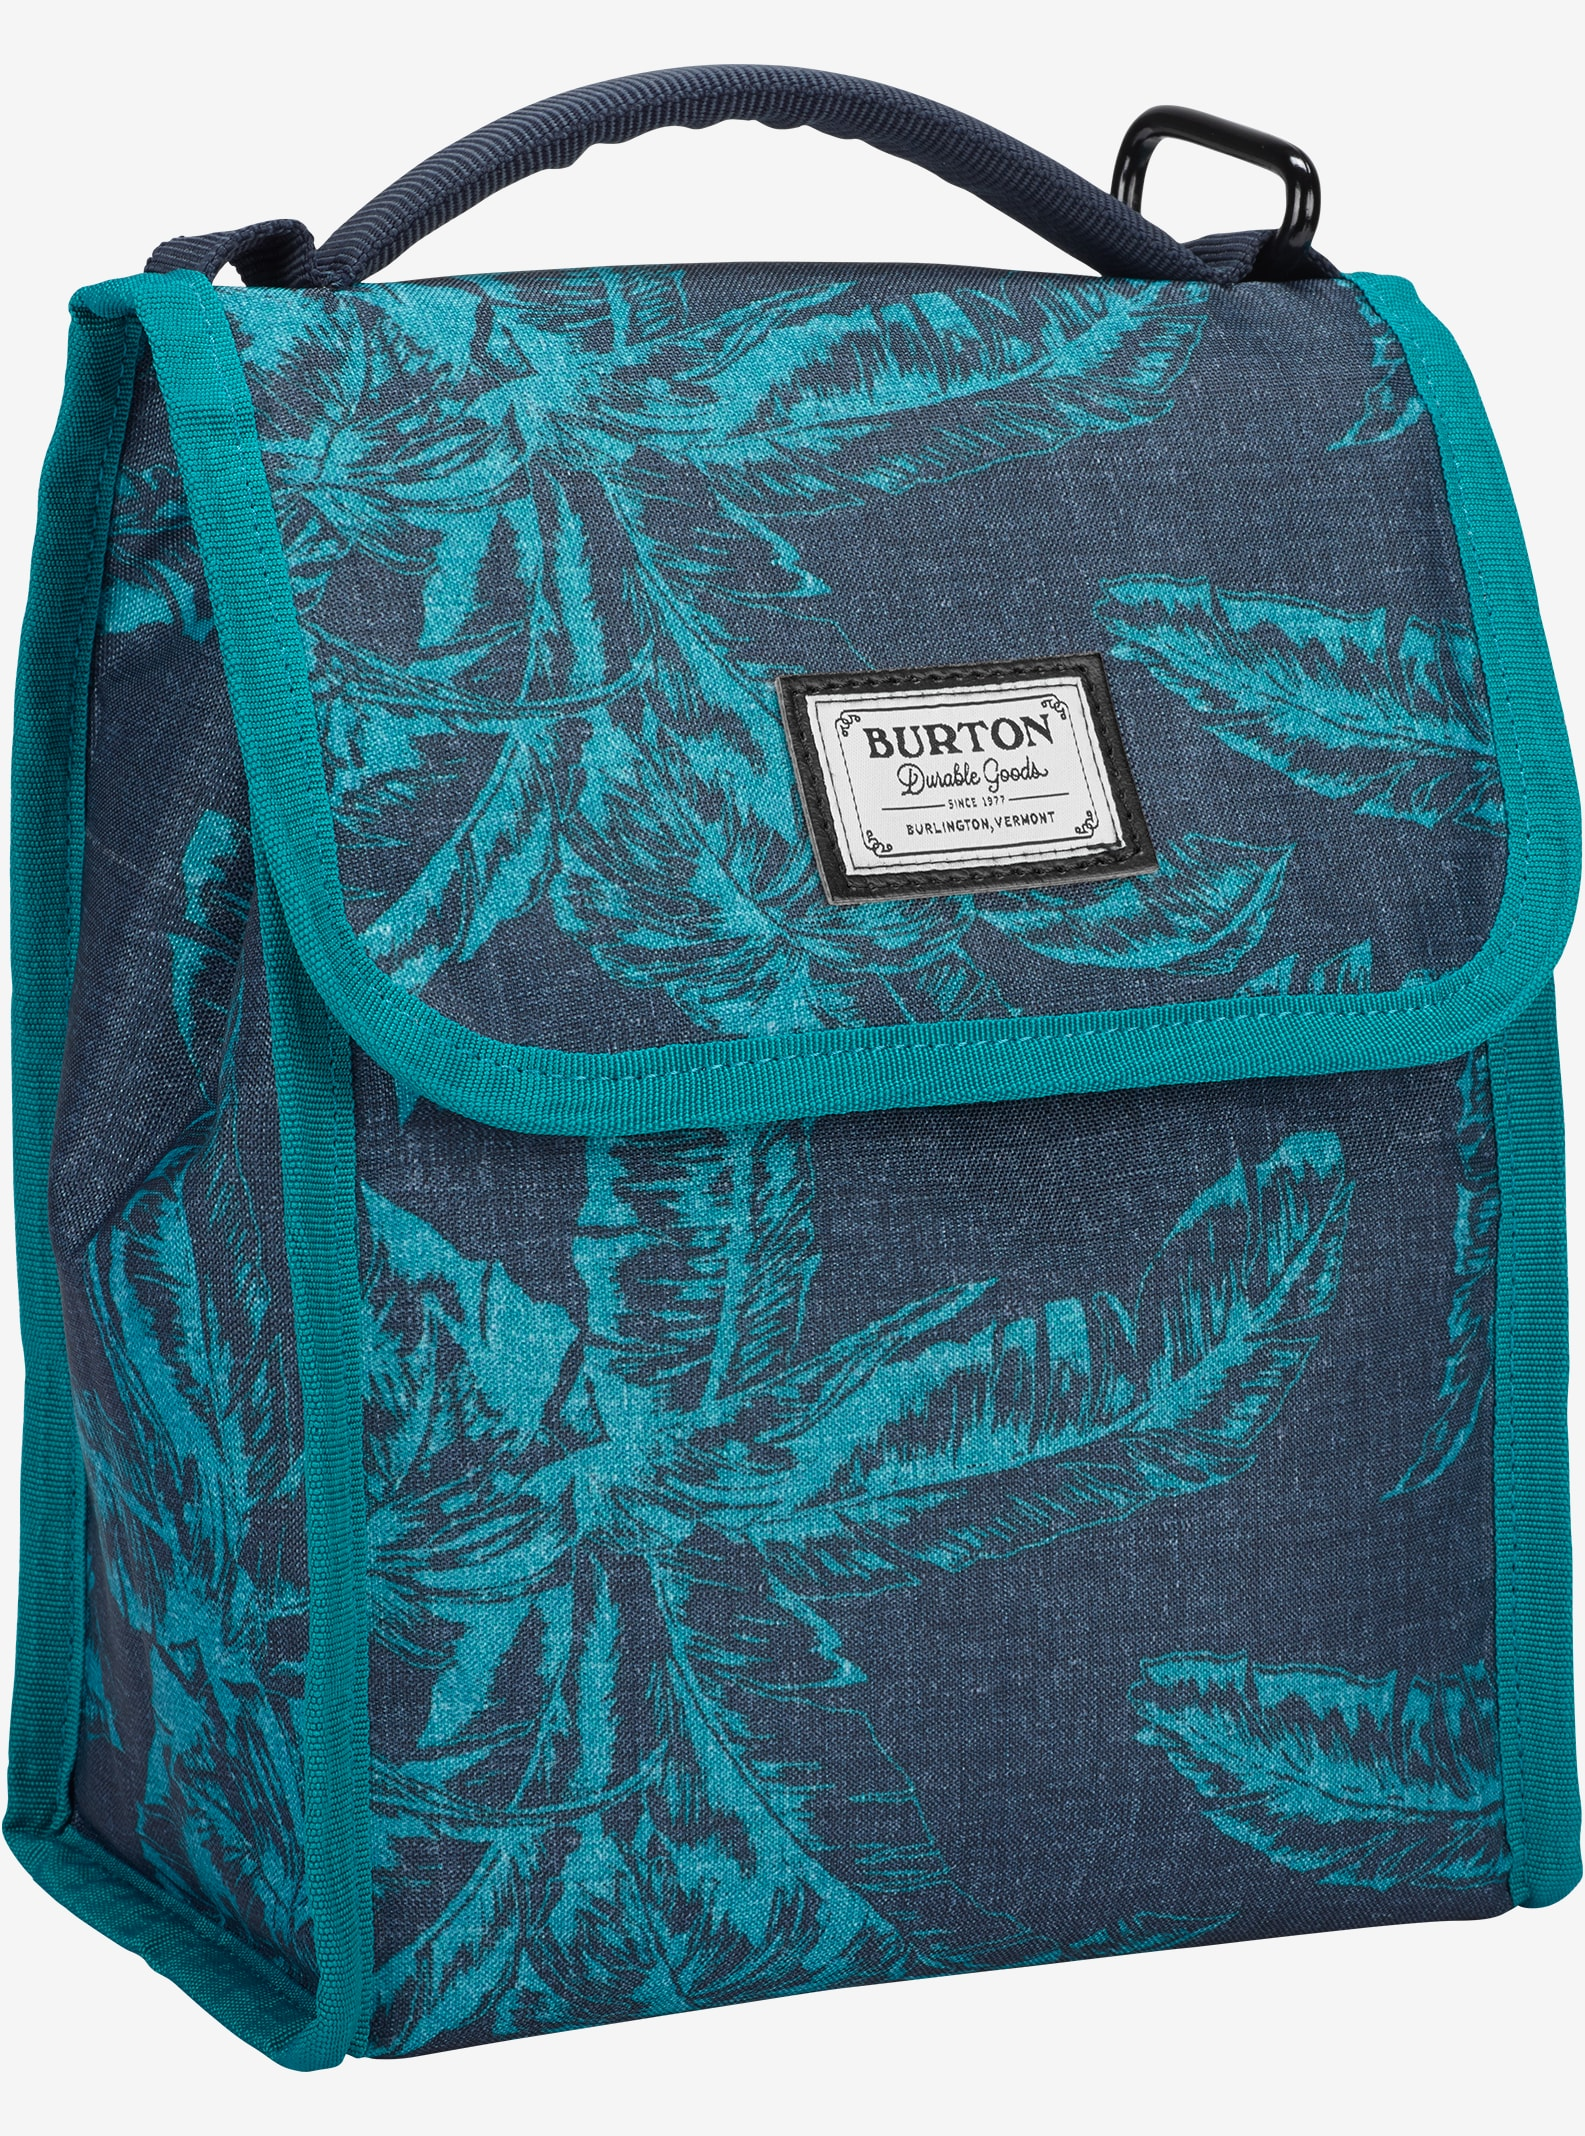 Burton Lunch Sack shown in Tropical Print